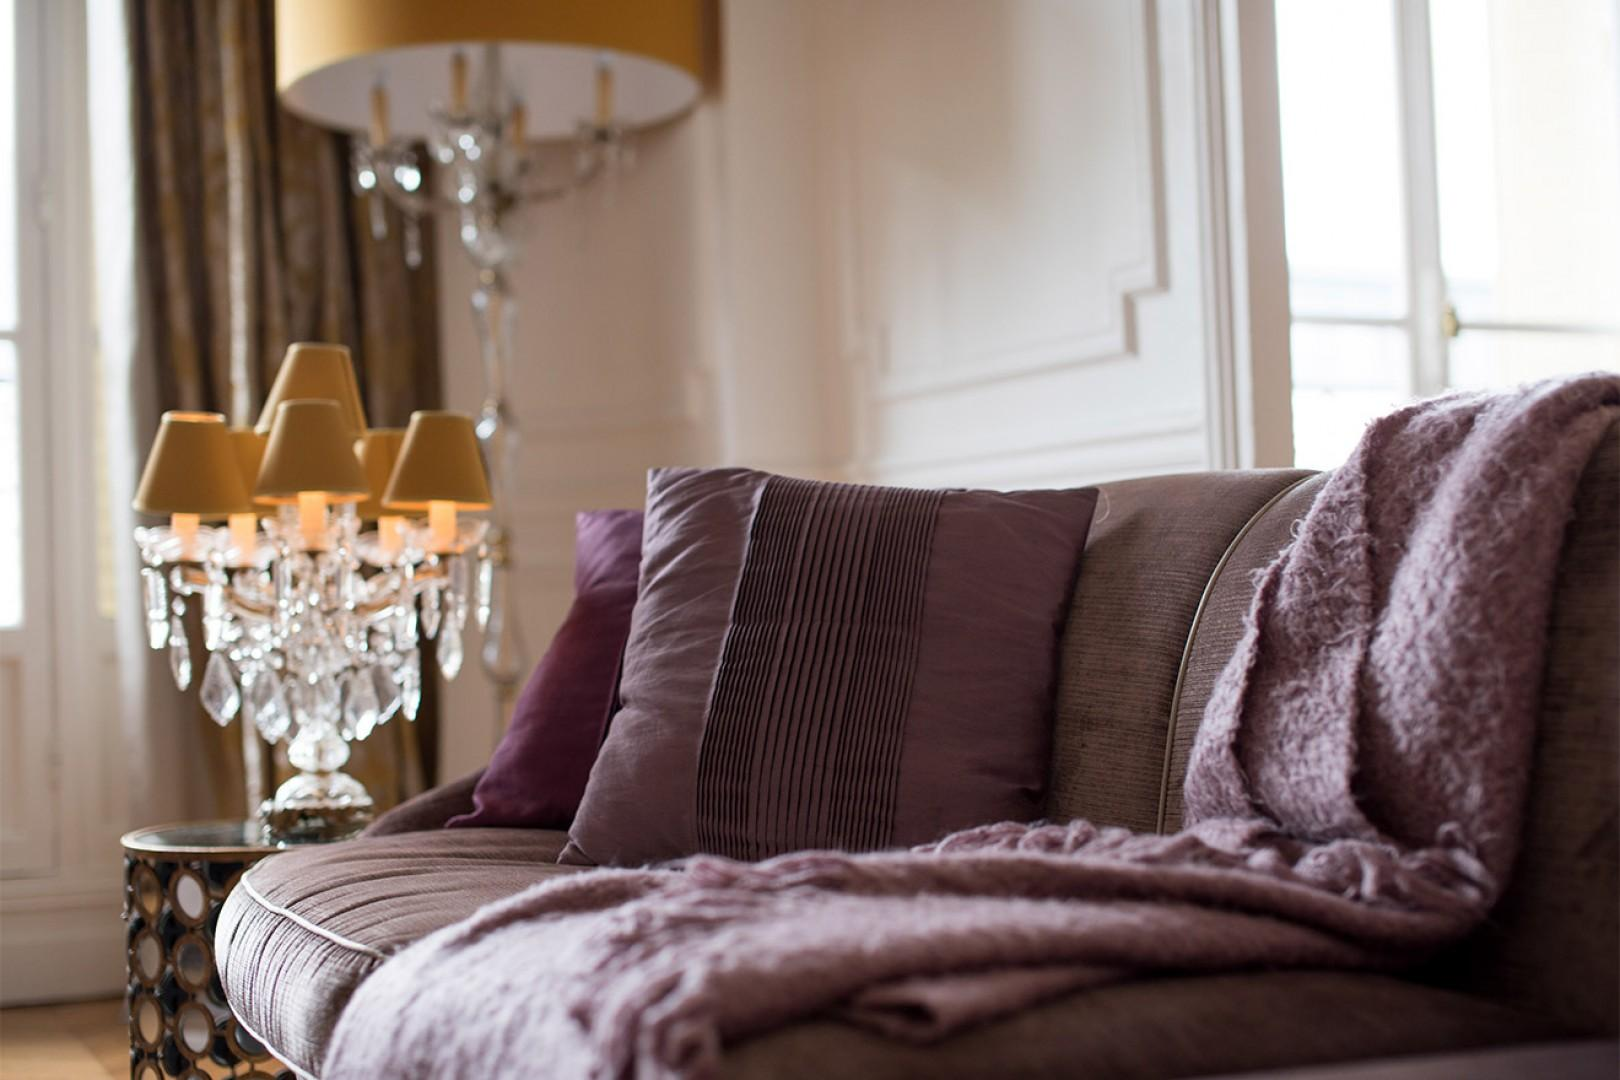 The comfy couch is perfect for relaxing after a long day exploring Paris.